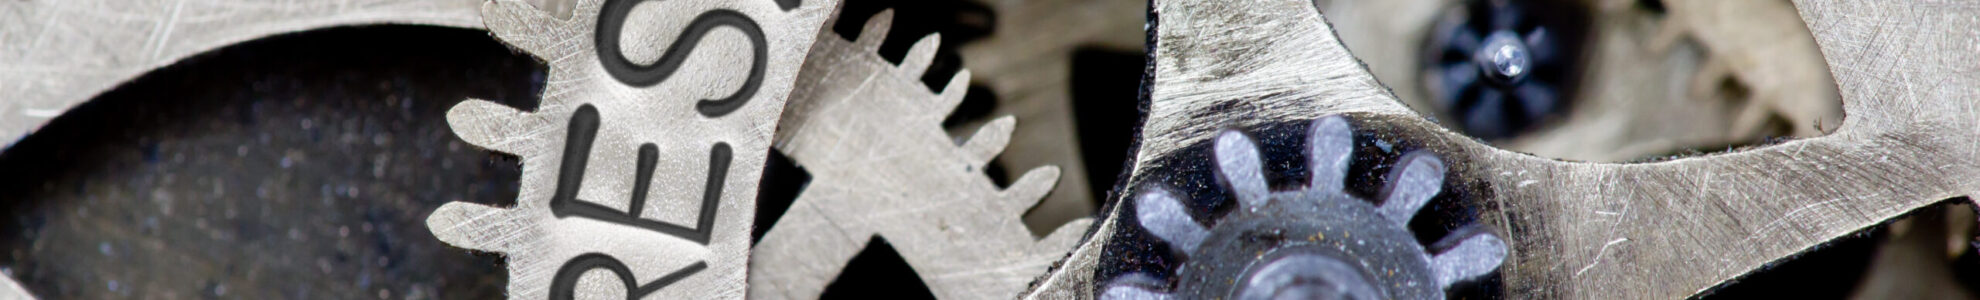 Macro photo of tooth wheel mechanism with RESPONSIBILITY concept letters